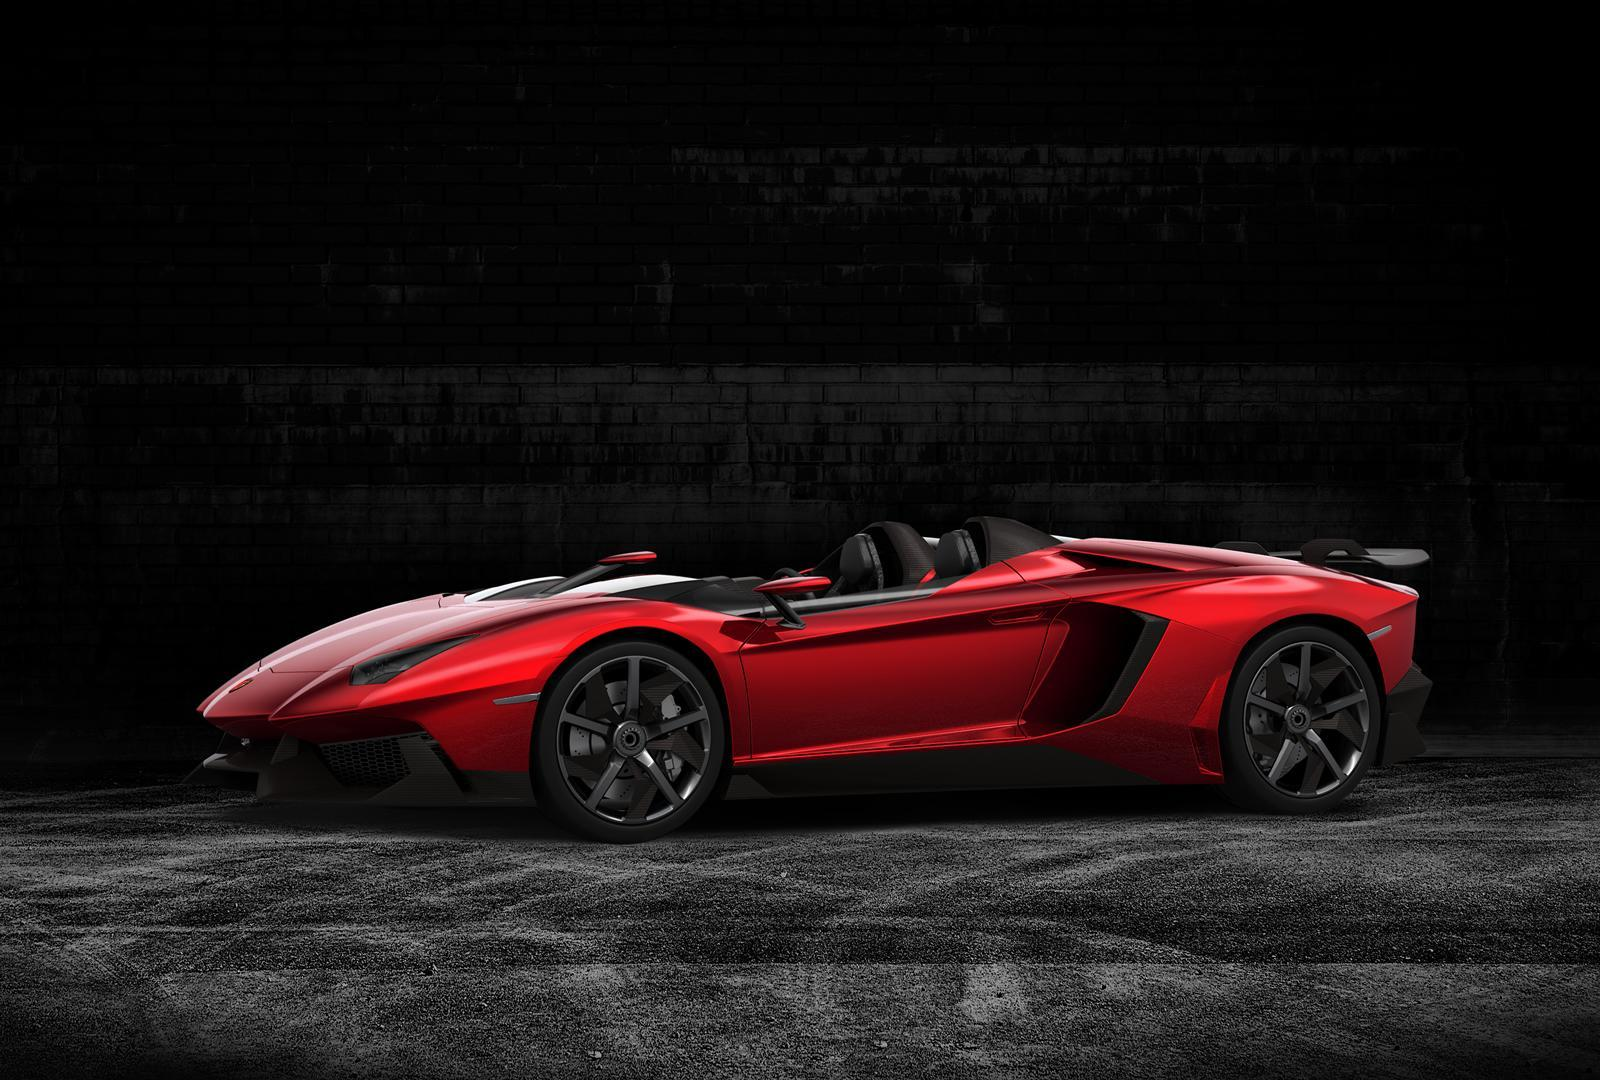 Lamborghini Aventador J 2012 2 Wallpapers